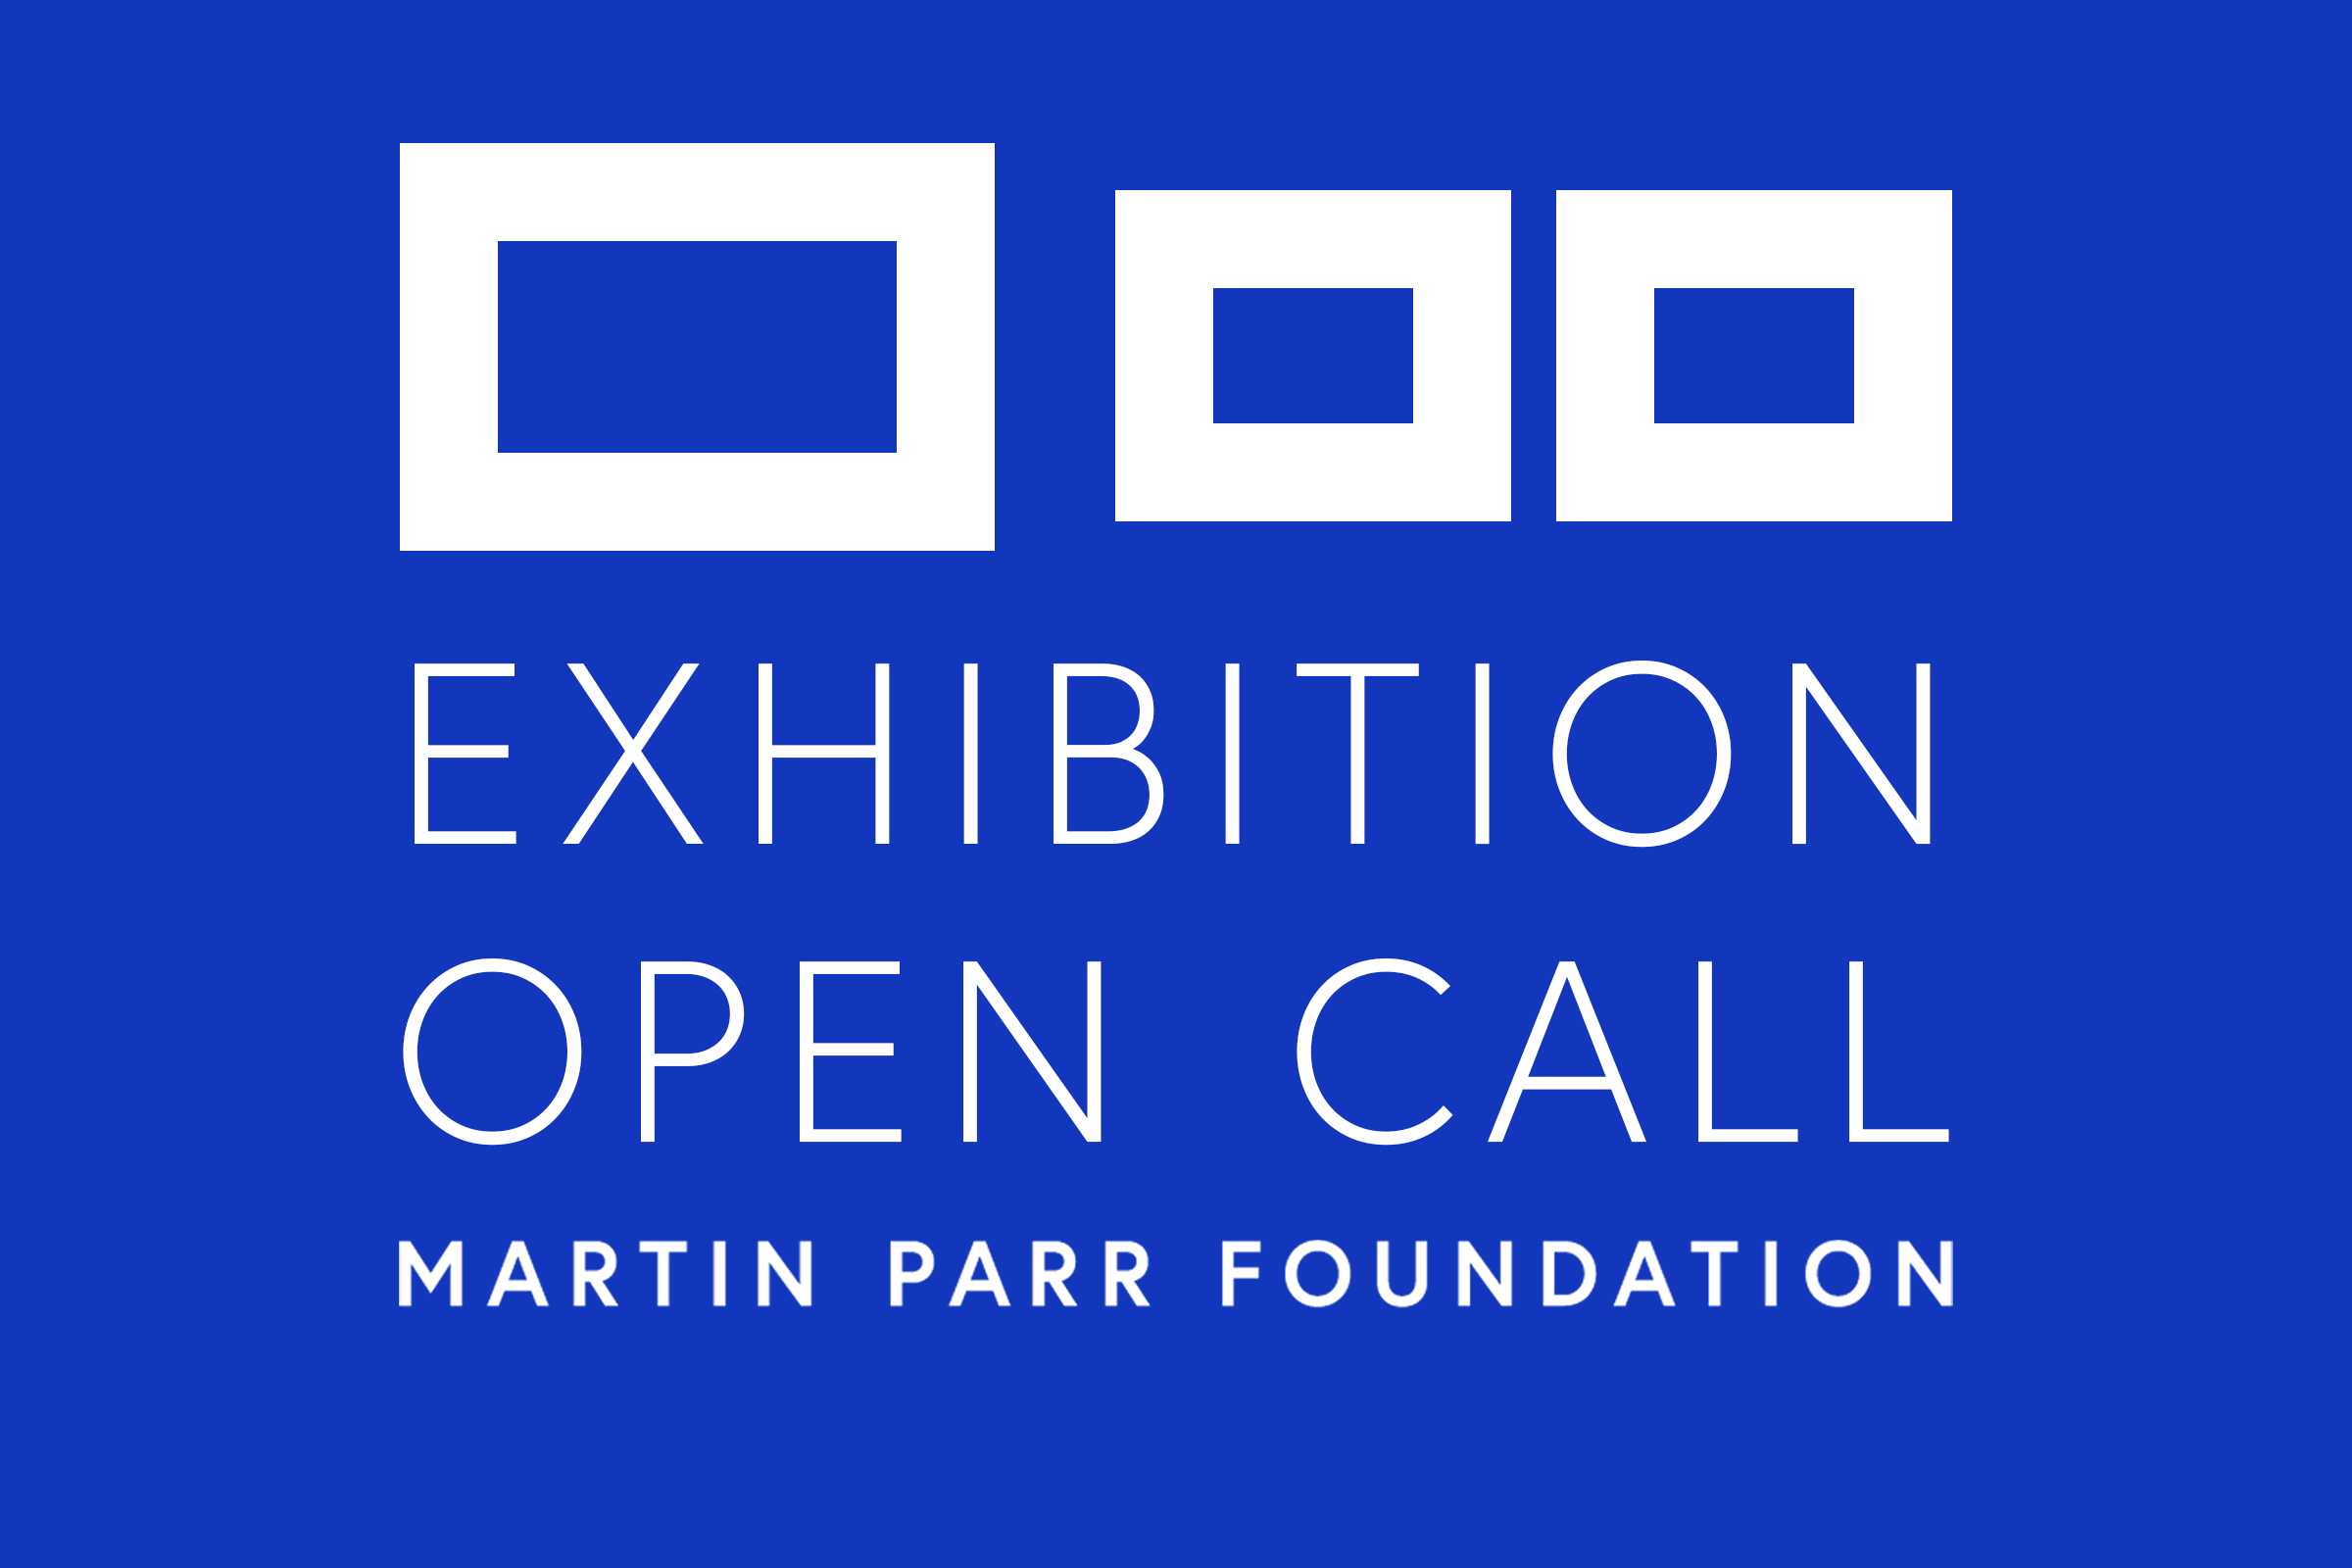 open-call-logo-2by3